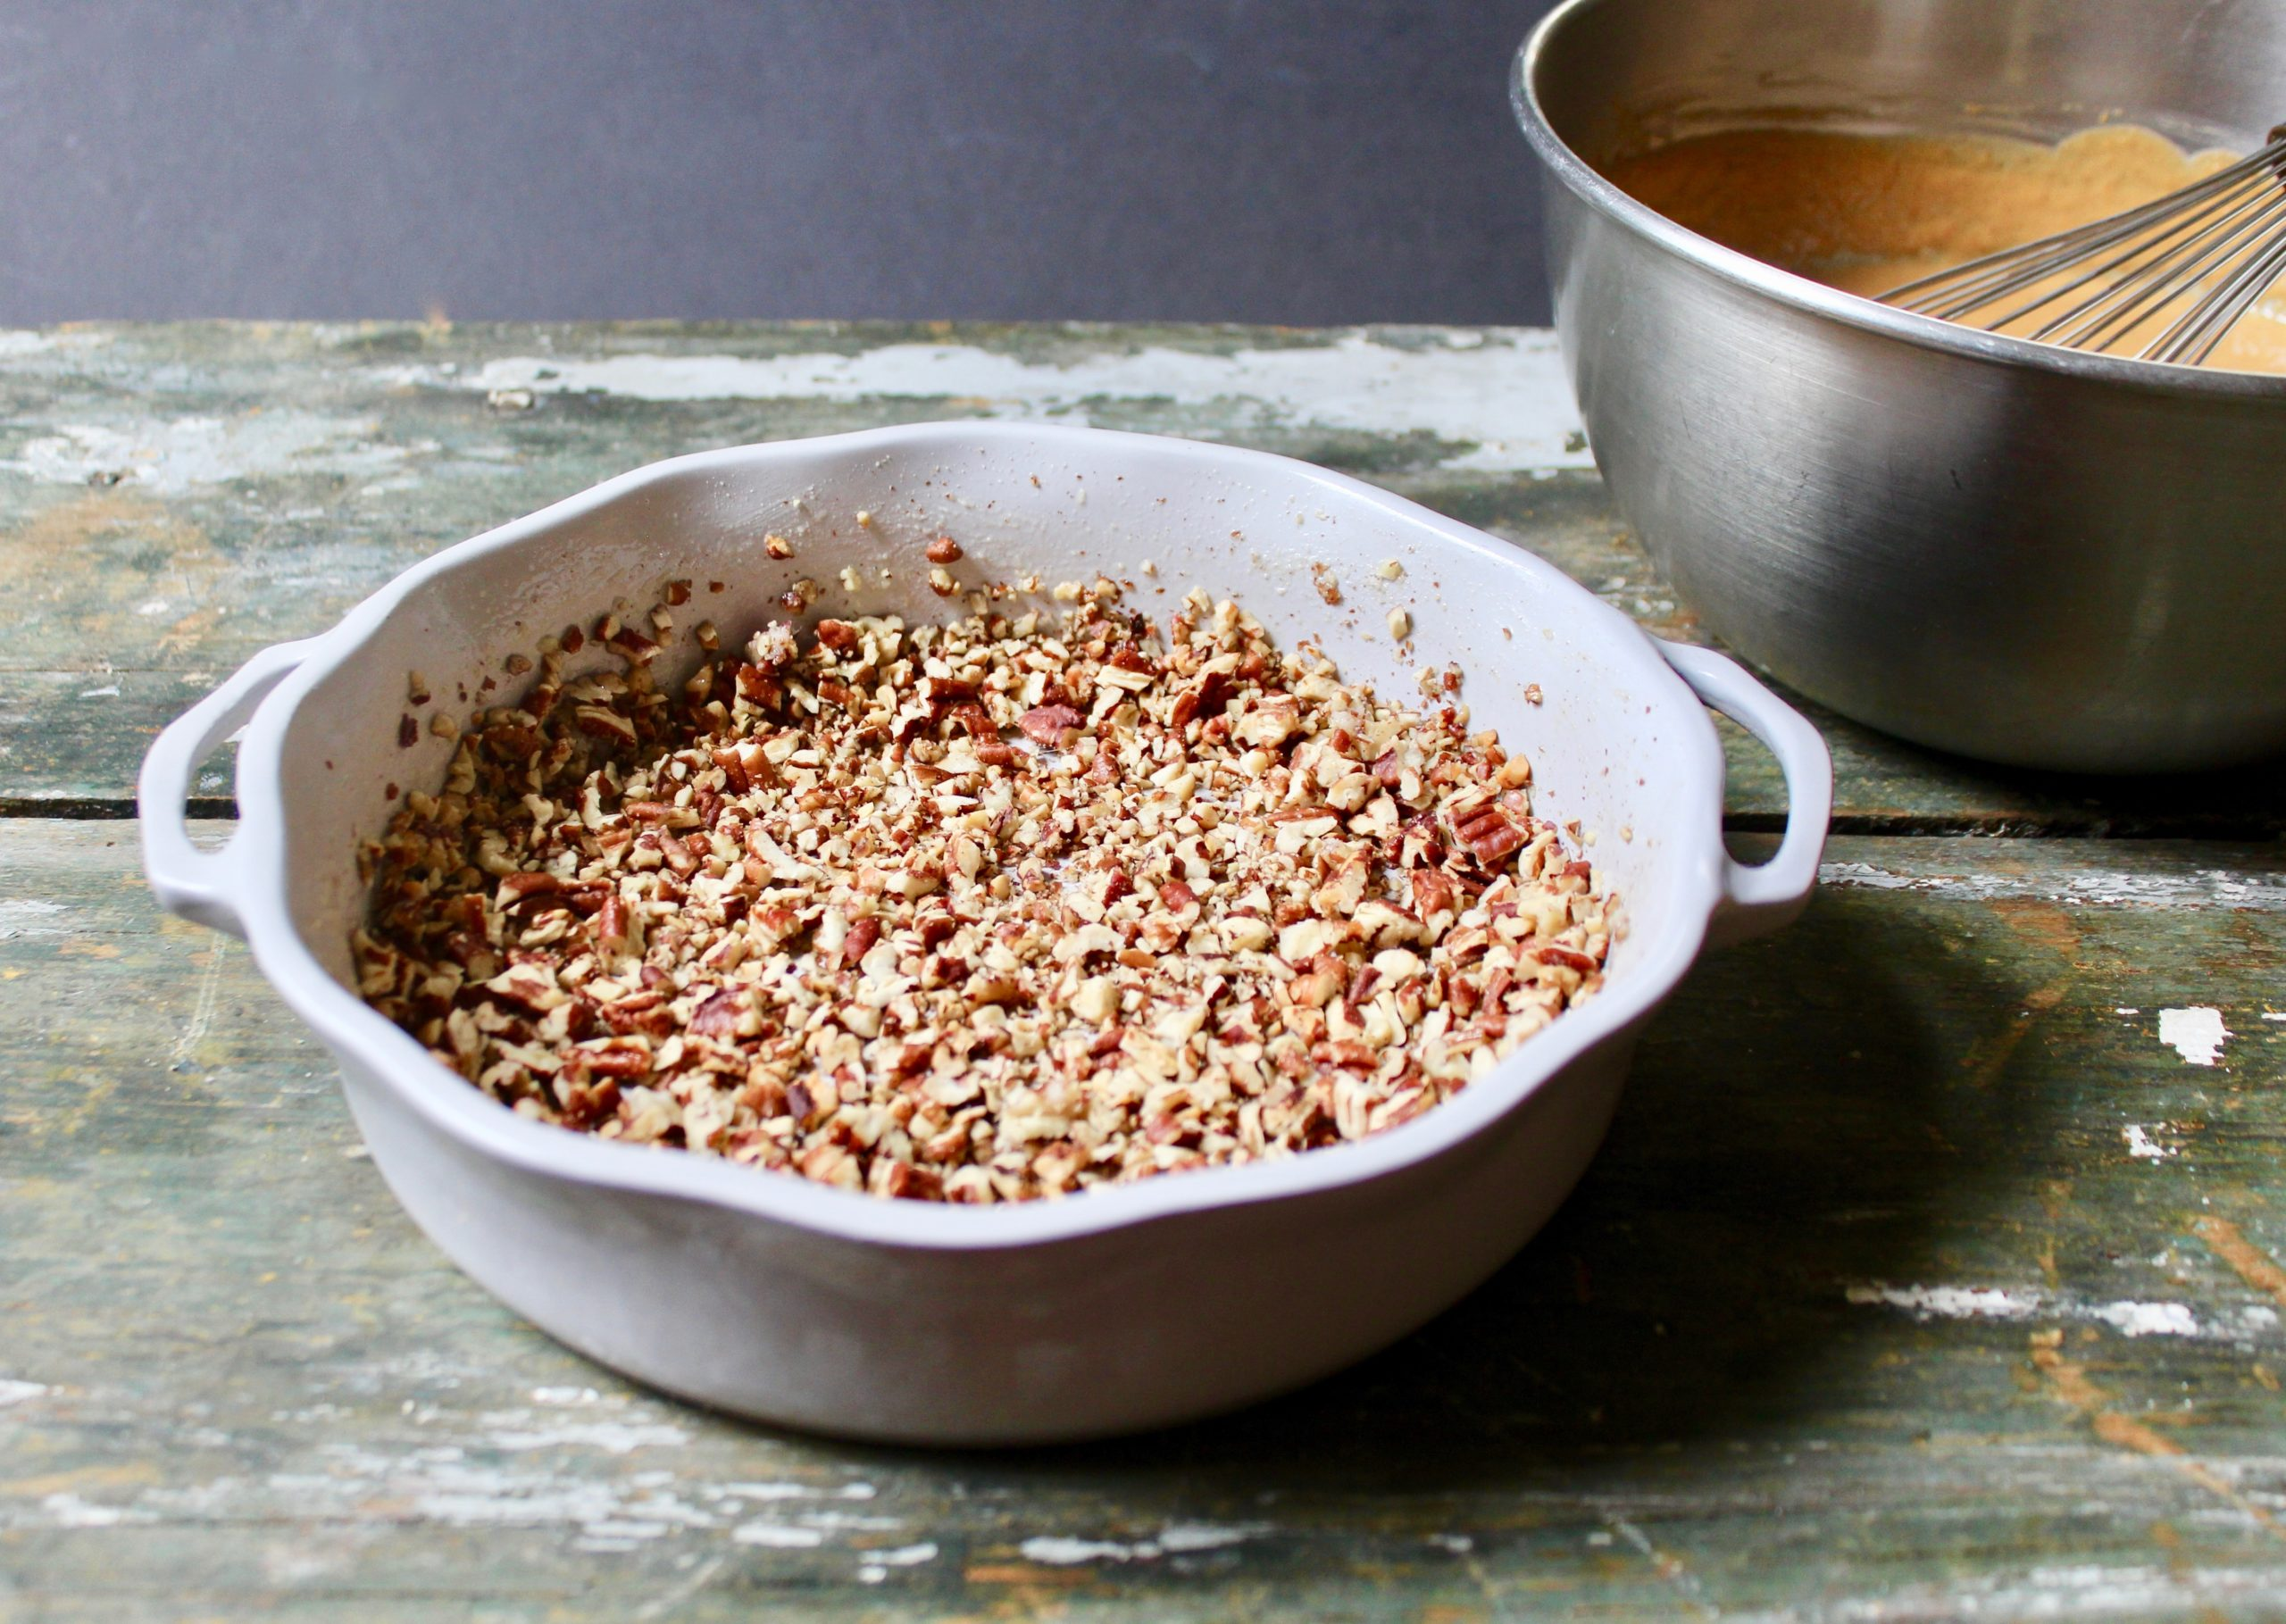 toasted pecans in bake dish